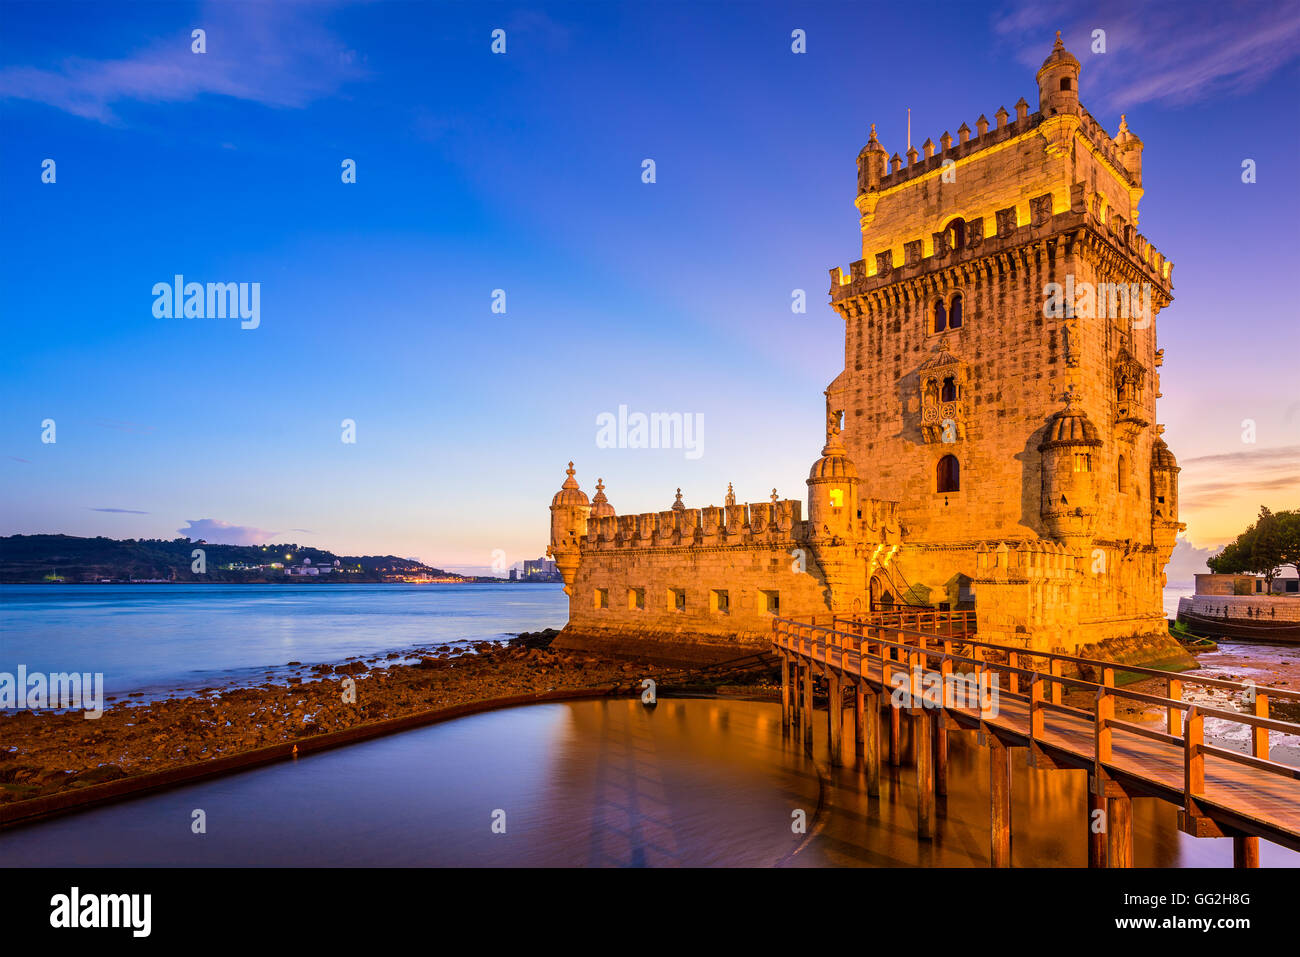 Belem Tower on the Tagus River in Lisbon, Portugal. - Stock Image